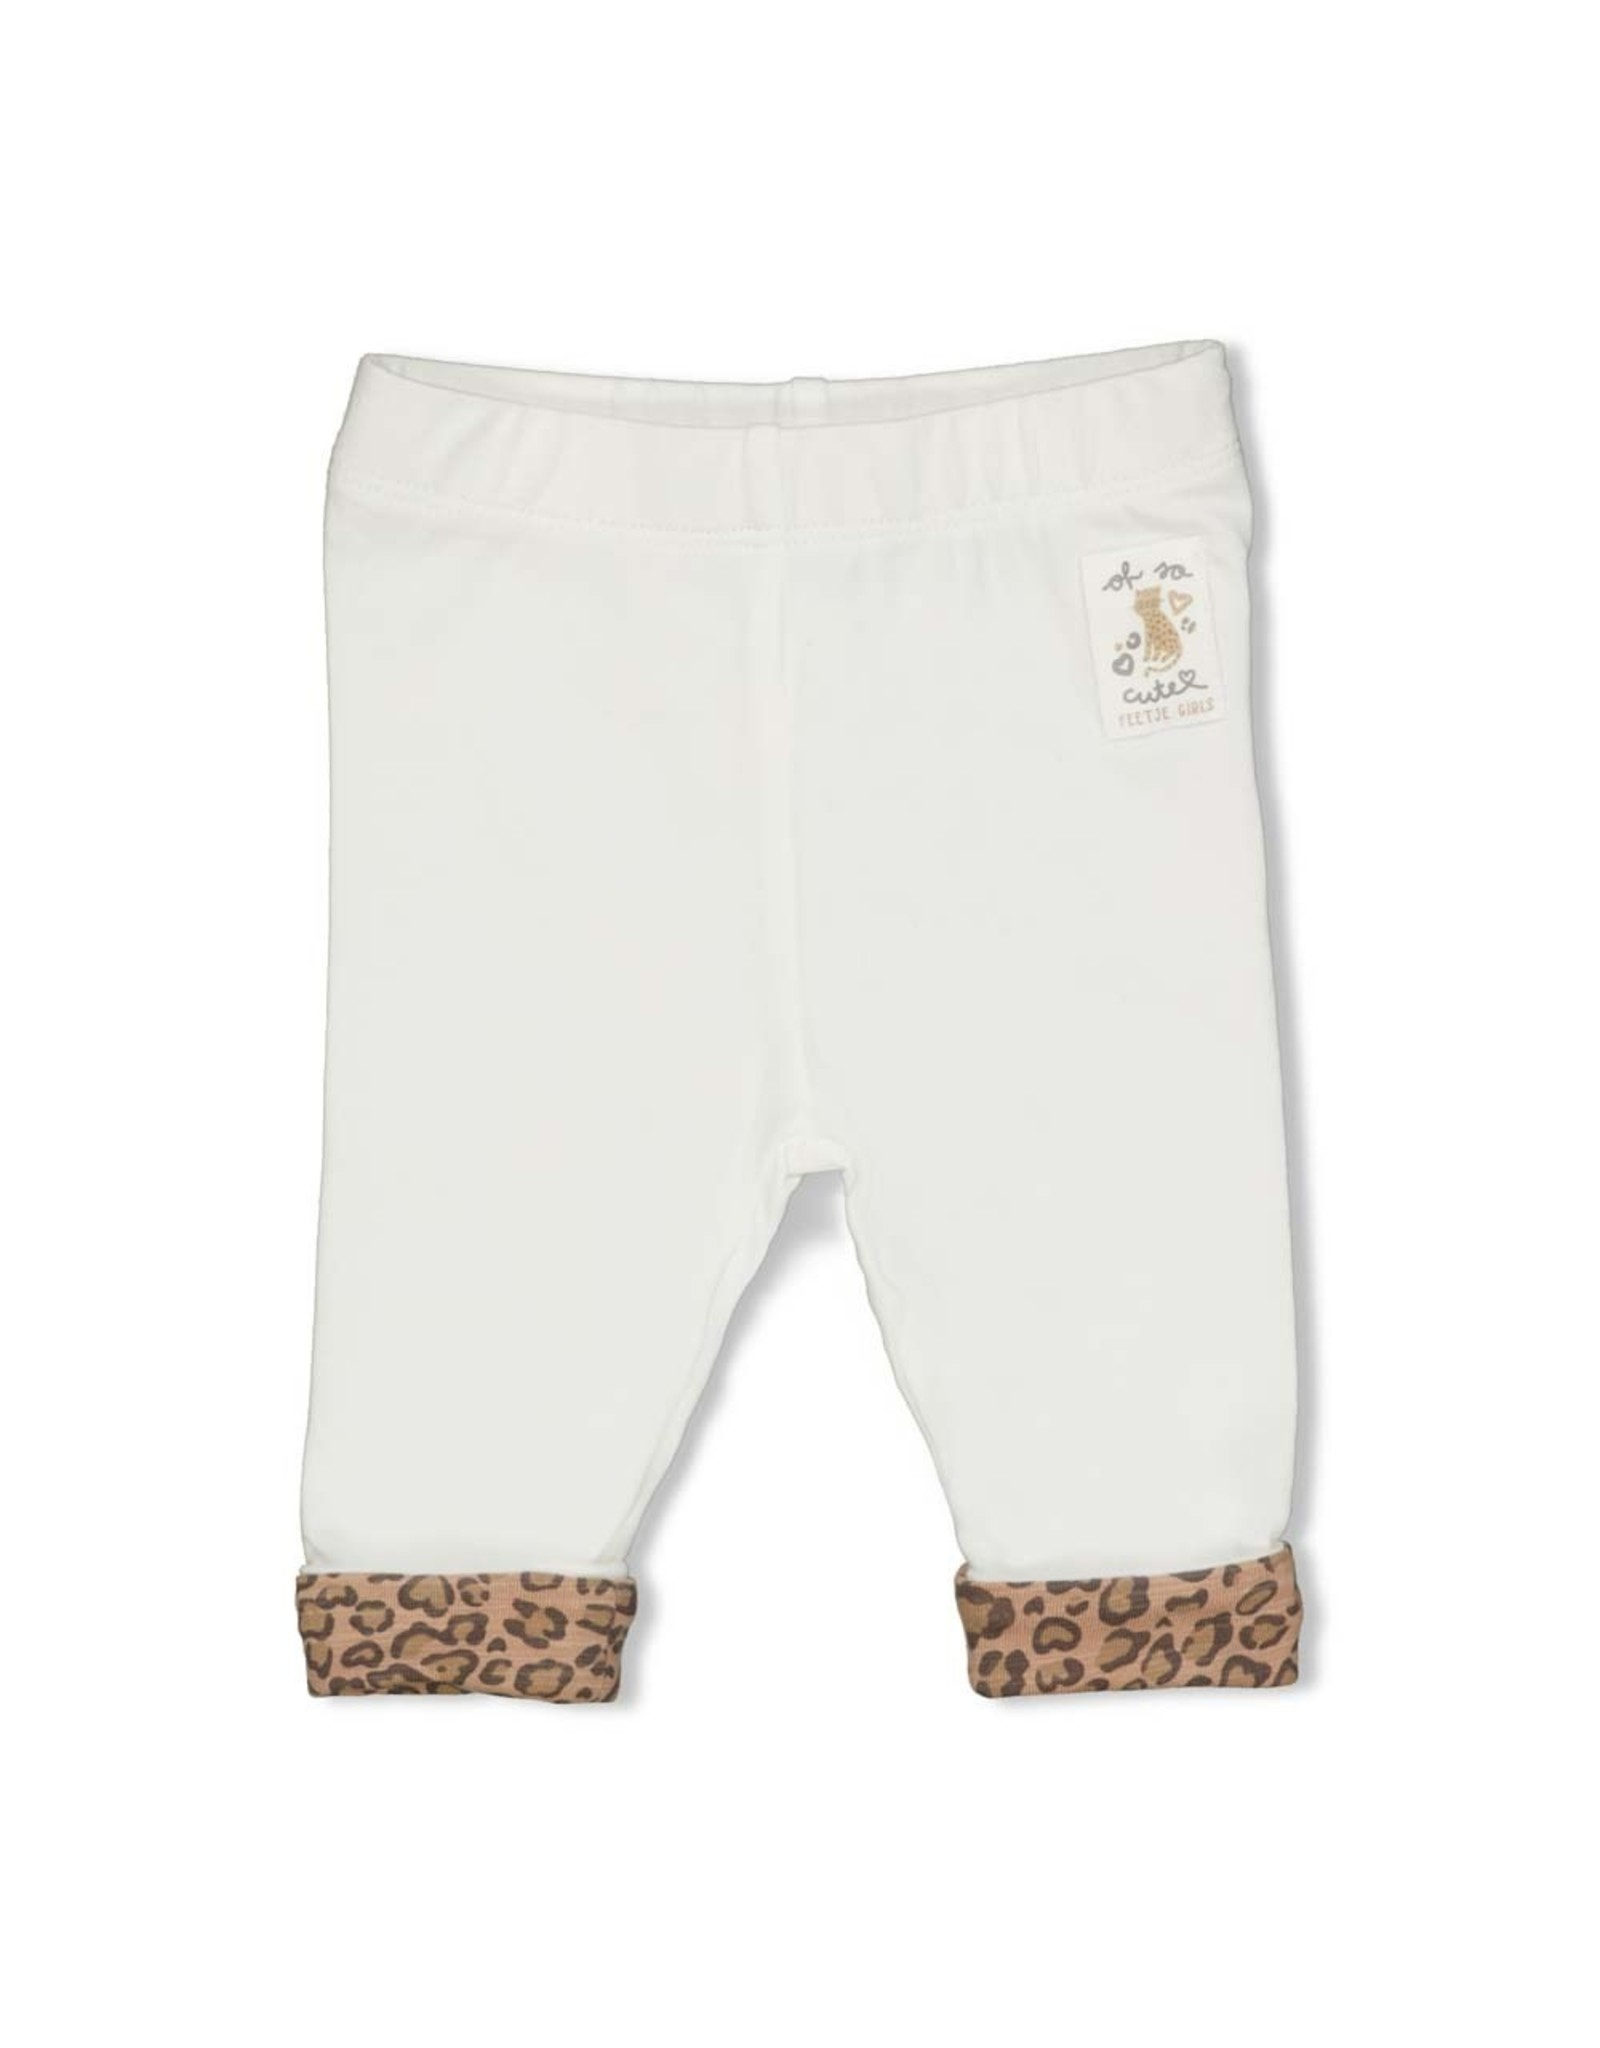 Feetje Legging - Panther Cutie. Offwhite